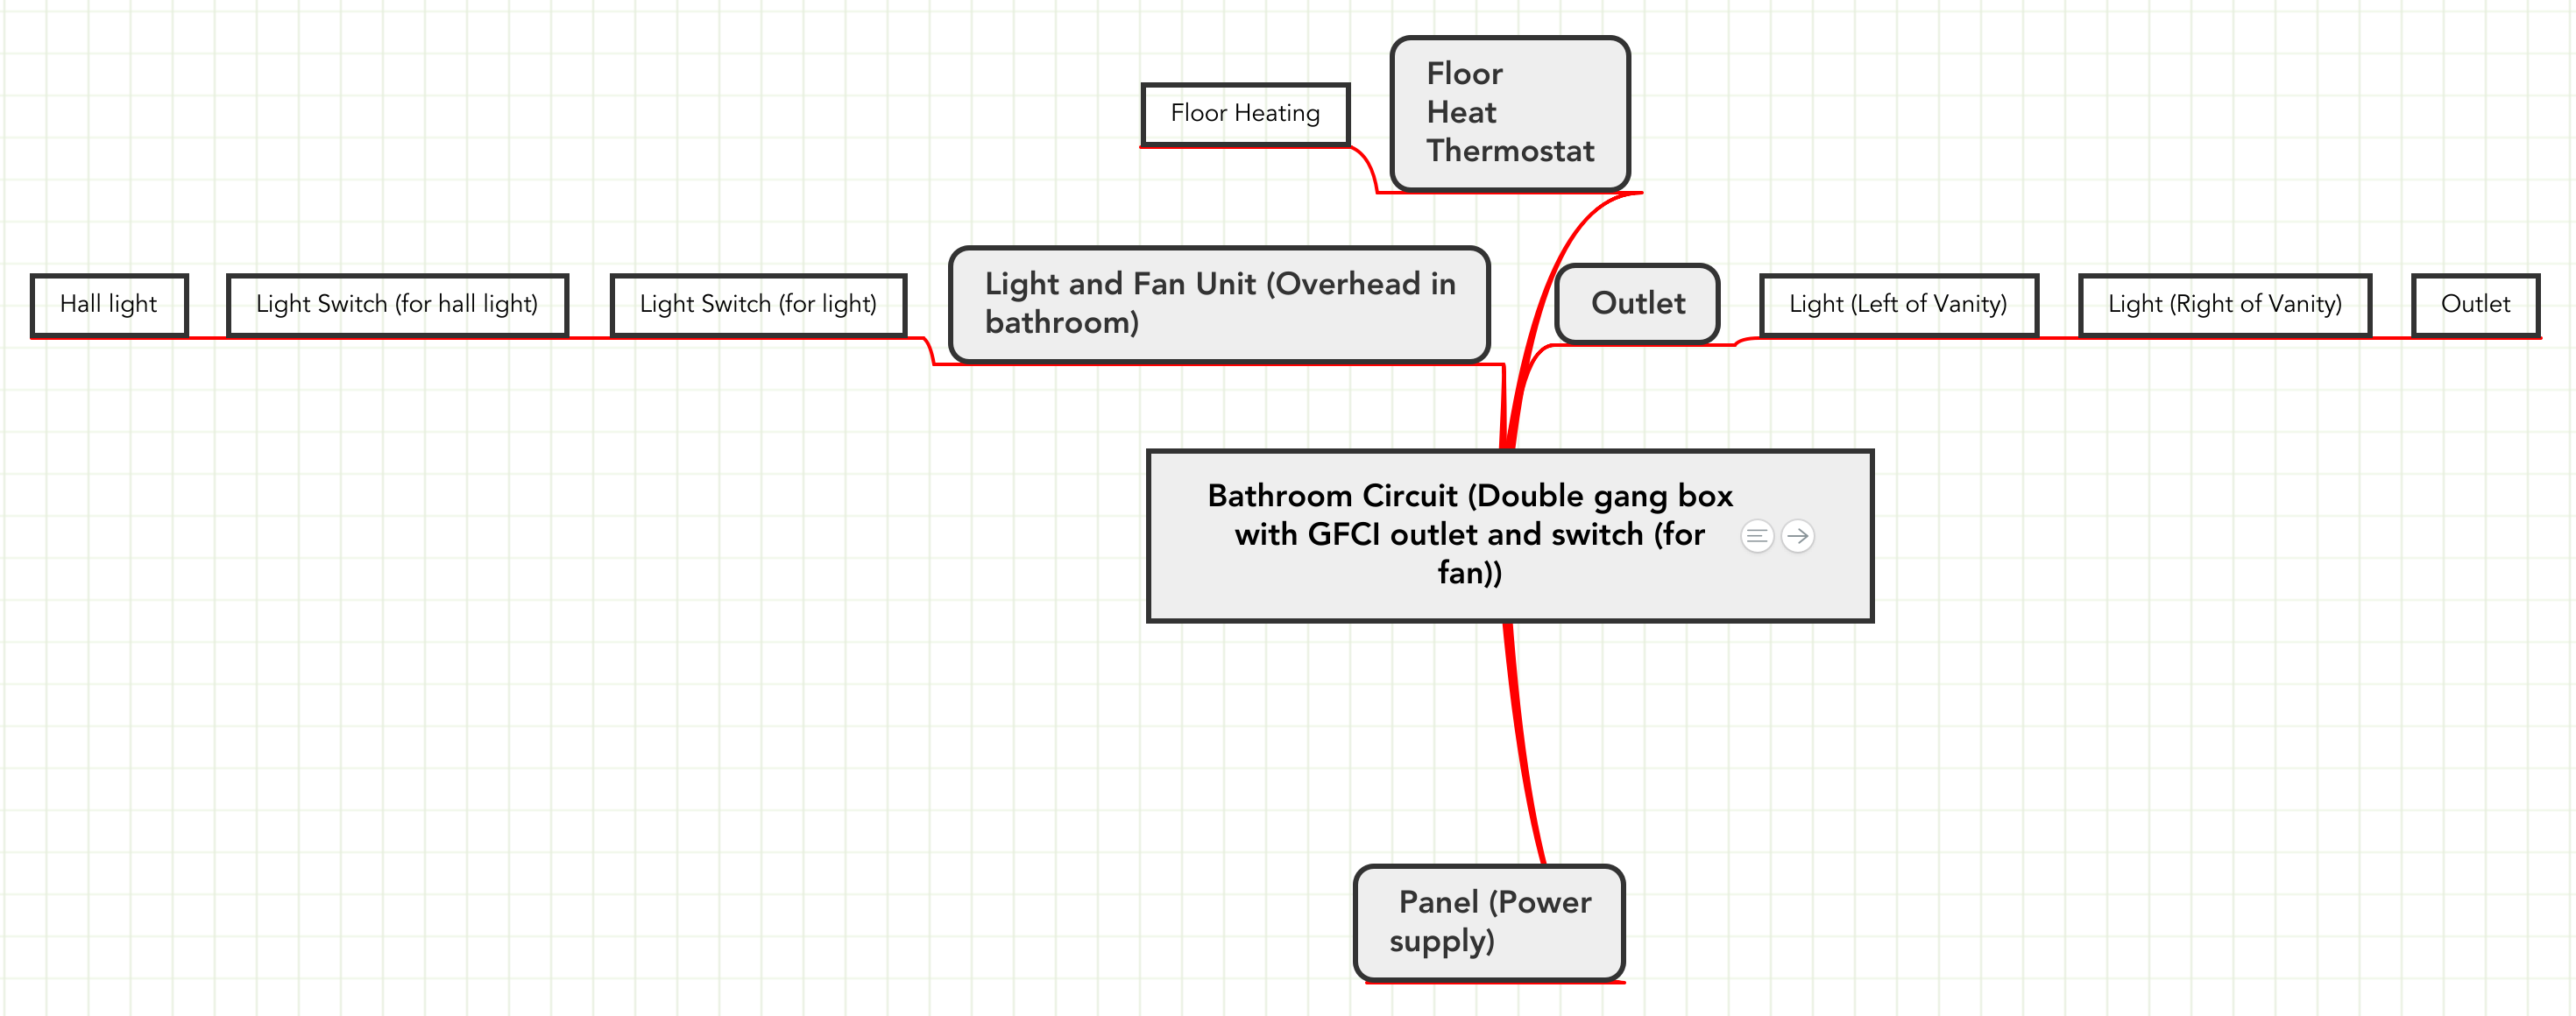 Wiring Double Gang Light Switch And Schematic Library Box Diagram For Bathroom Fan Gfci In A Two House Grounding